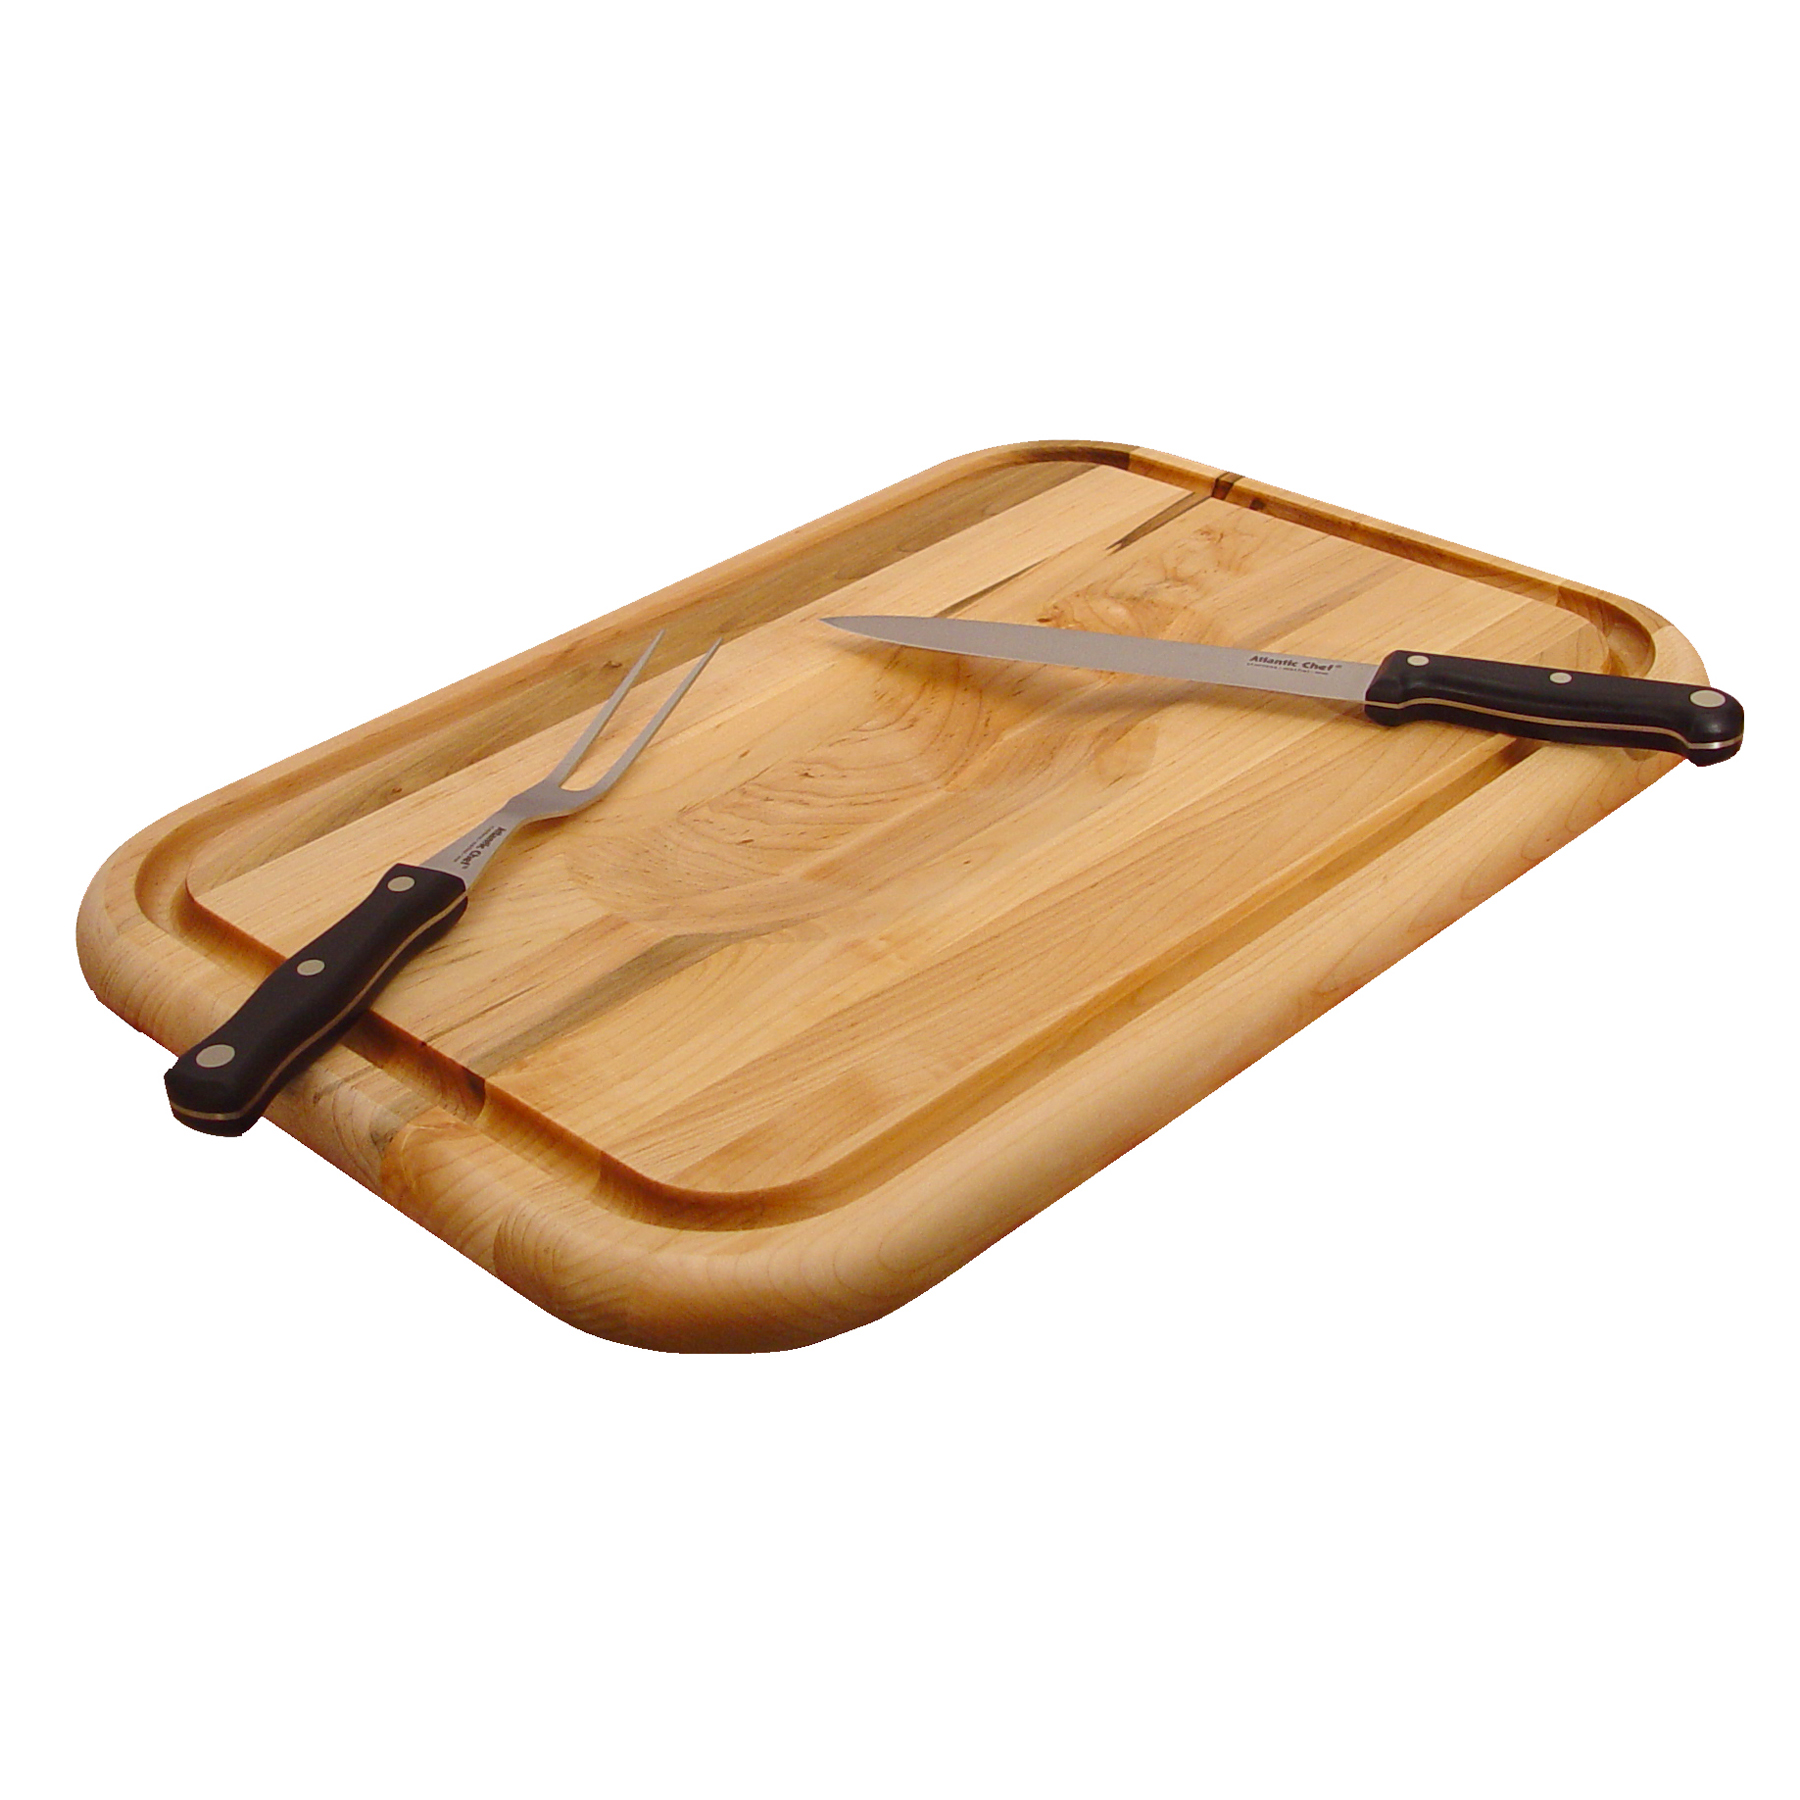 Catskill Grooved Carving Board with Trench & Wedge for Meat - 20